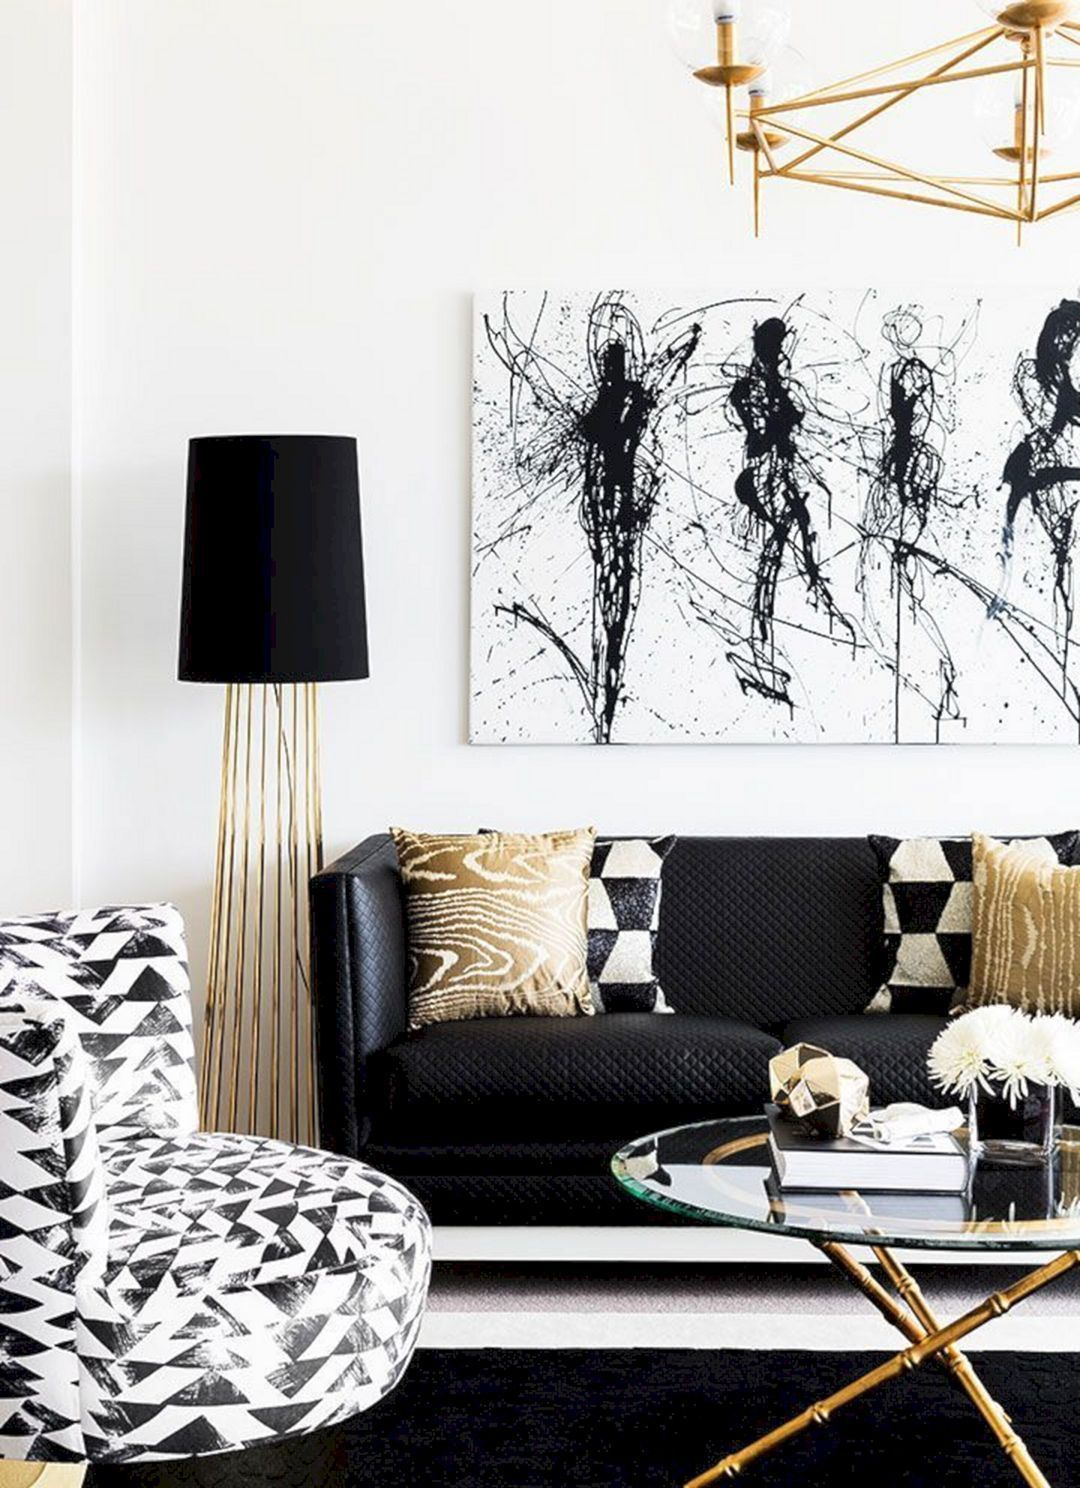 Black White And Gold Living Room Ideas In 2020 Black And White Living Room Decor White Living Room Decor Black And Gold Living Room